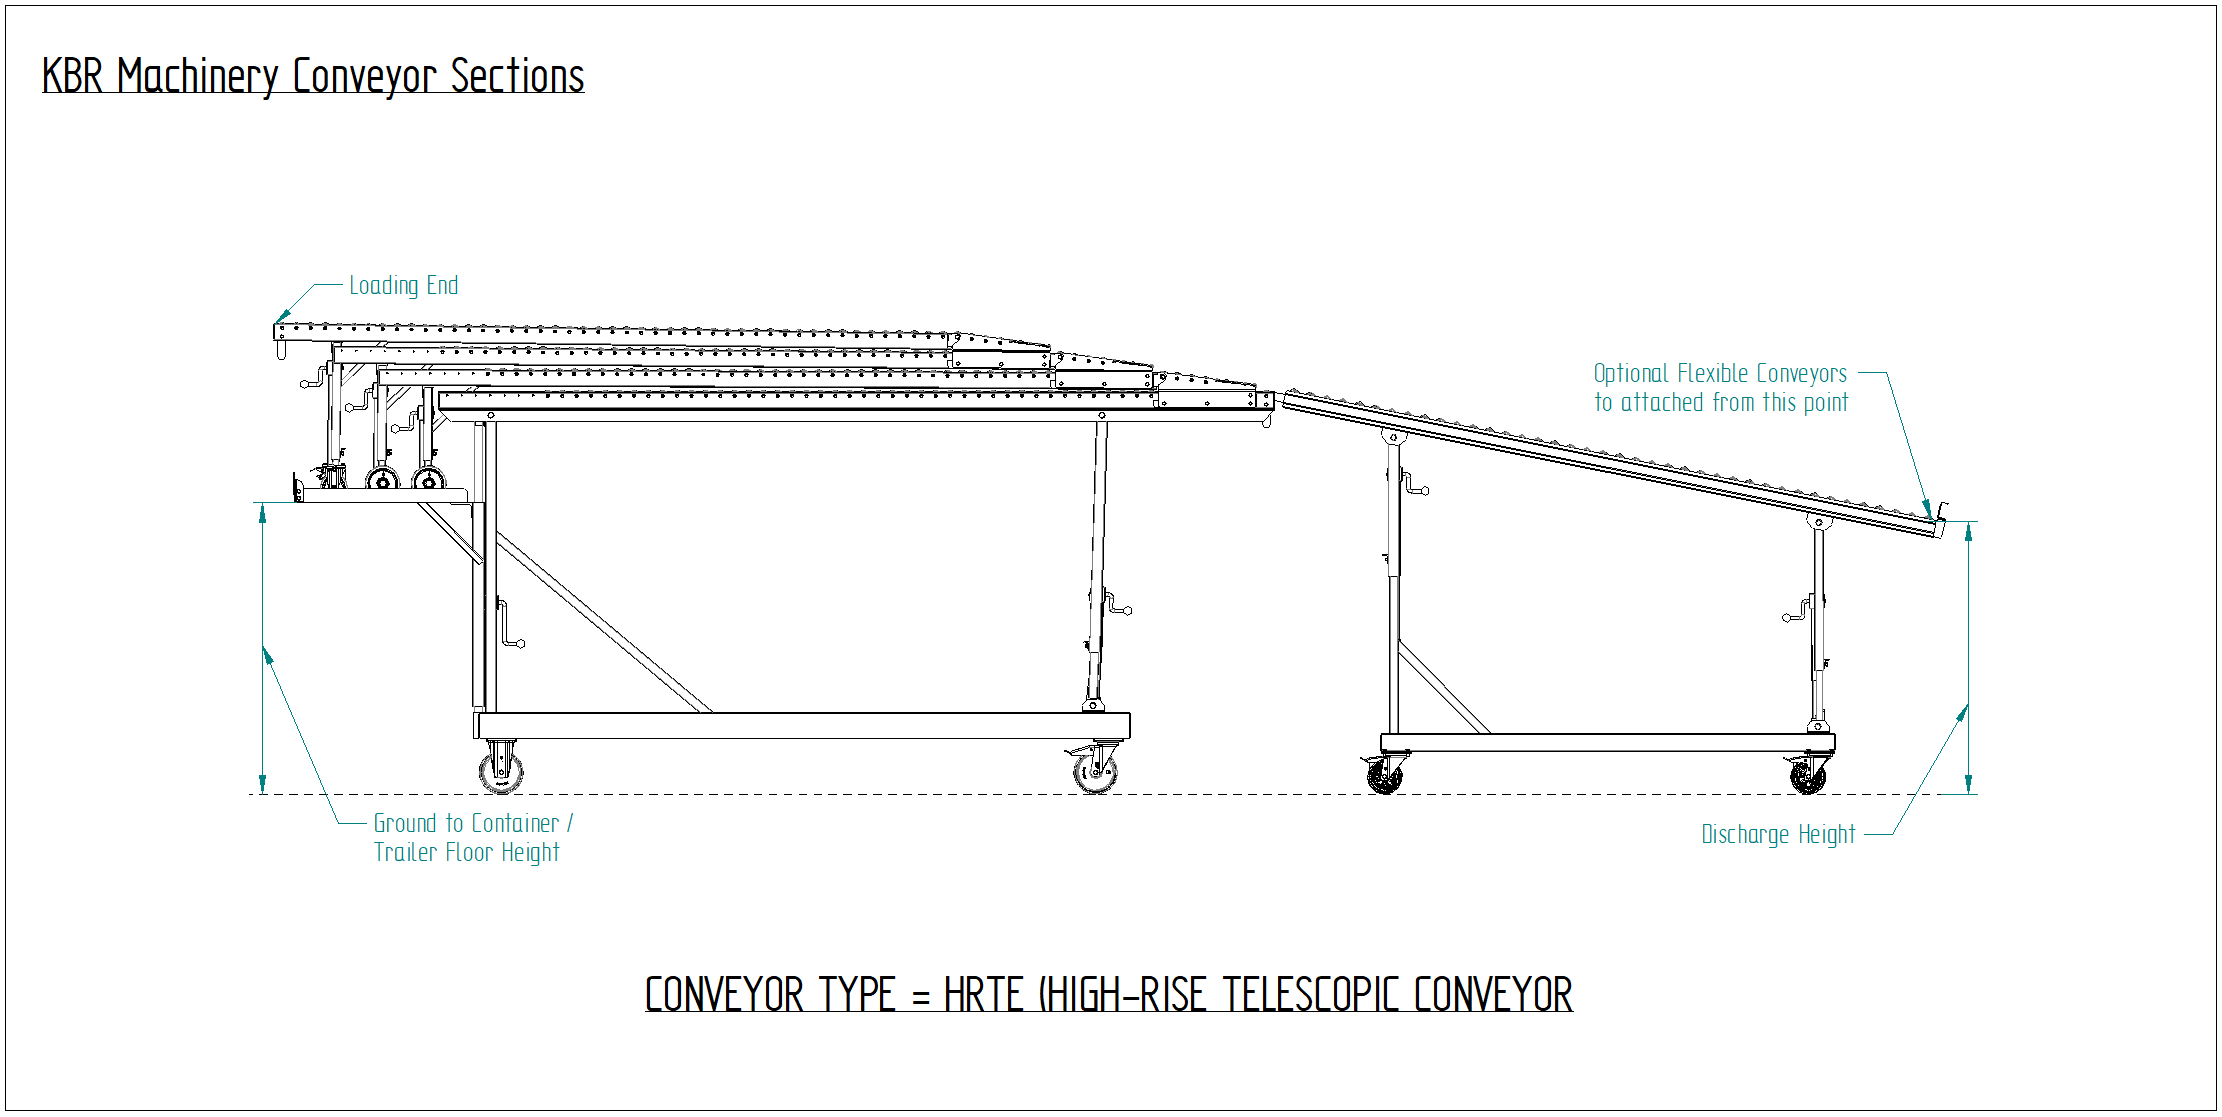 High level telescopic gravity vehicle unloading conveyor drawing for unloading containers and trailers from floor level to the back of the vehicle